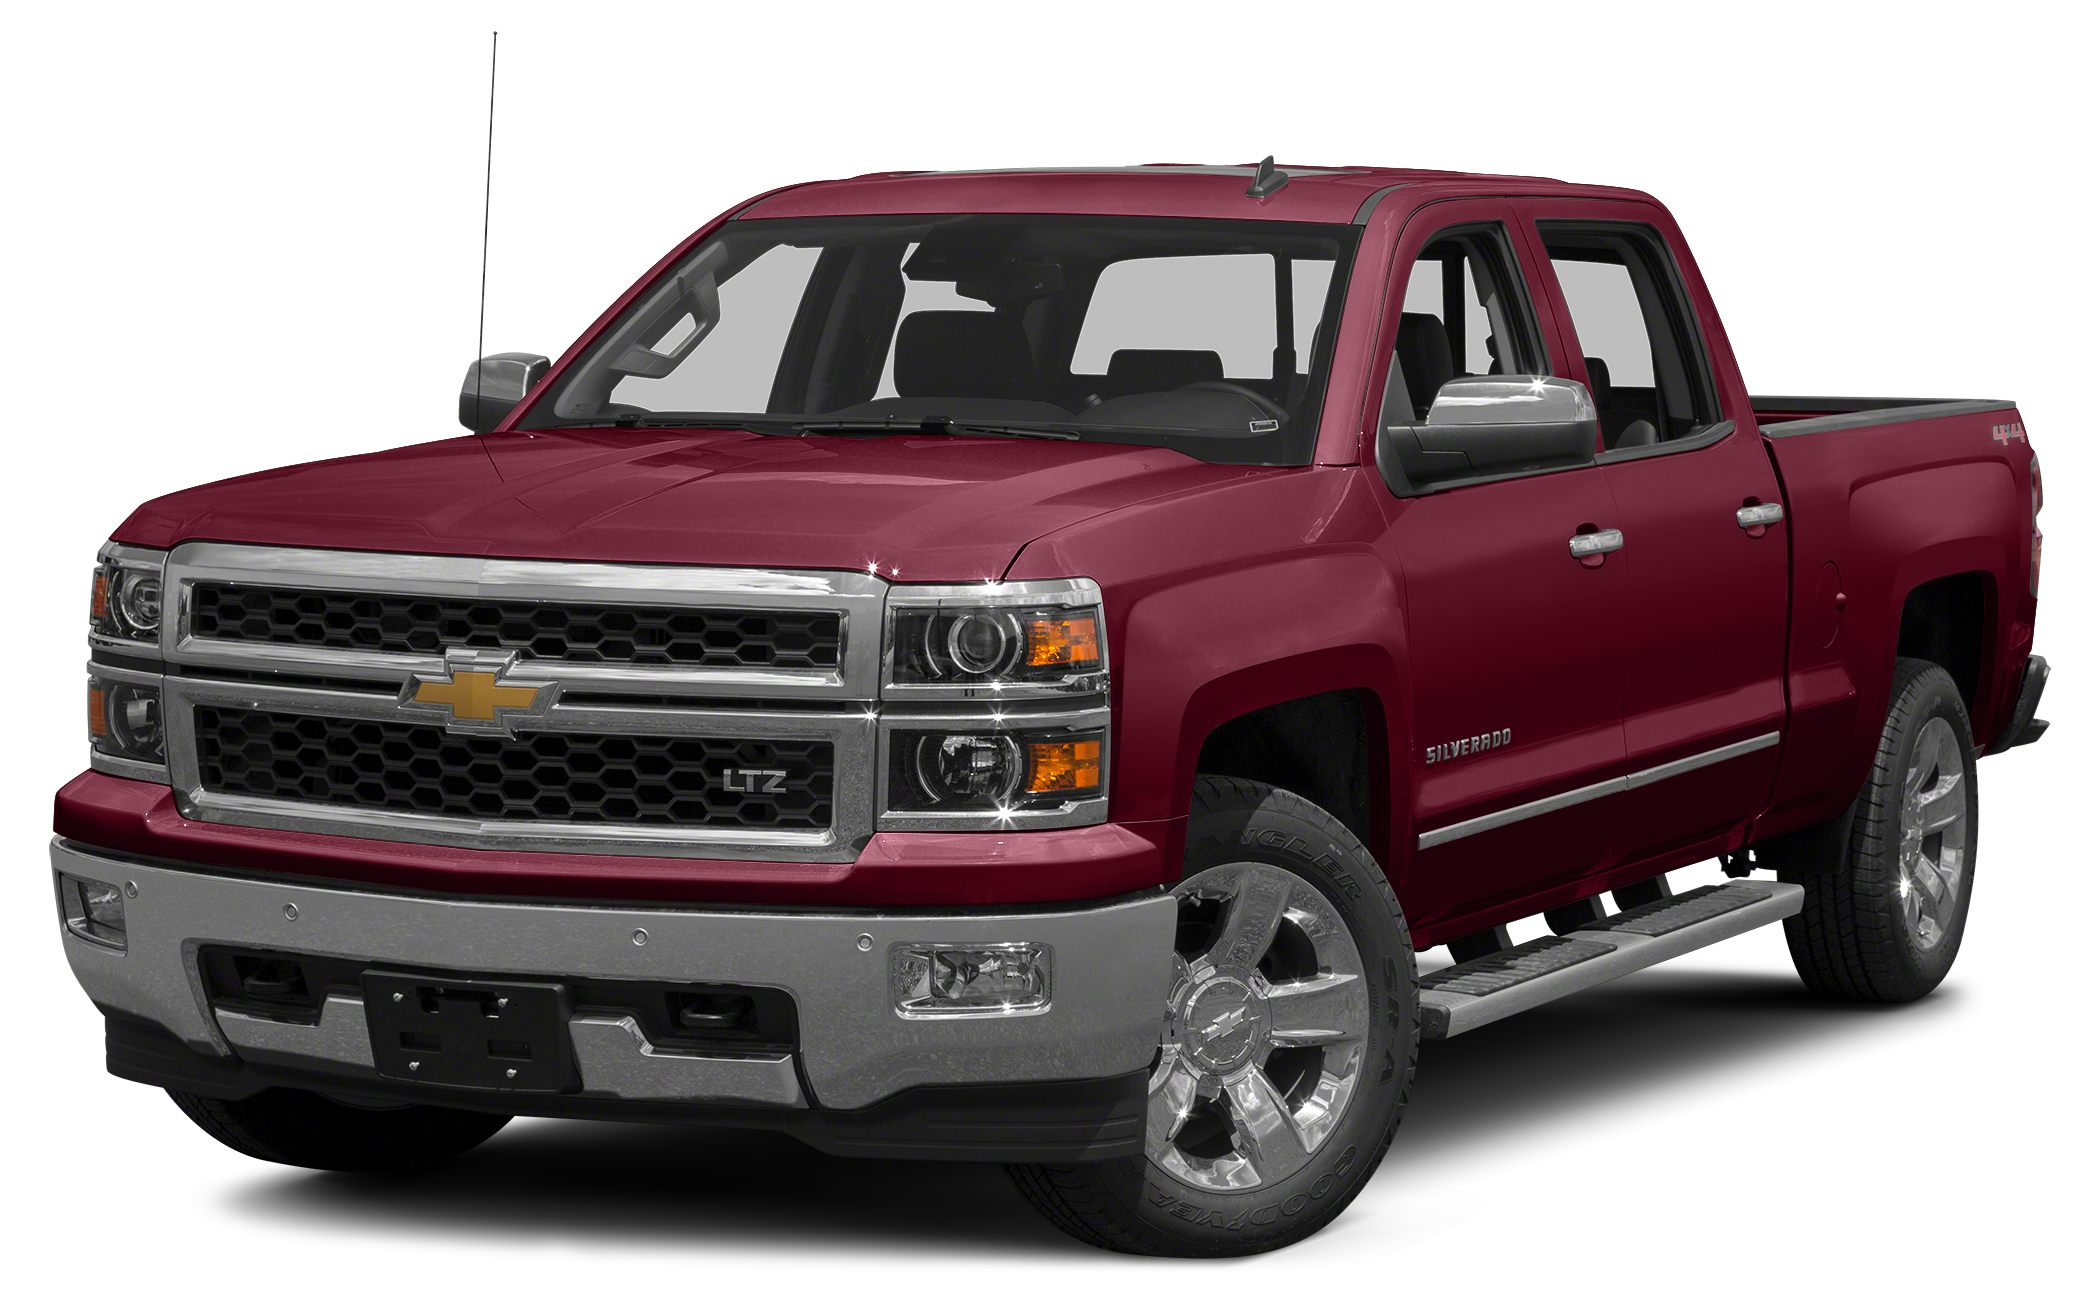 2014 Chevrolet Silverado 1500 LT w1LT EPA 22 MPG Hwy16 MPG City GREAT MILES 35820 ALL STAR ED